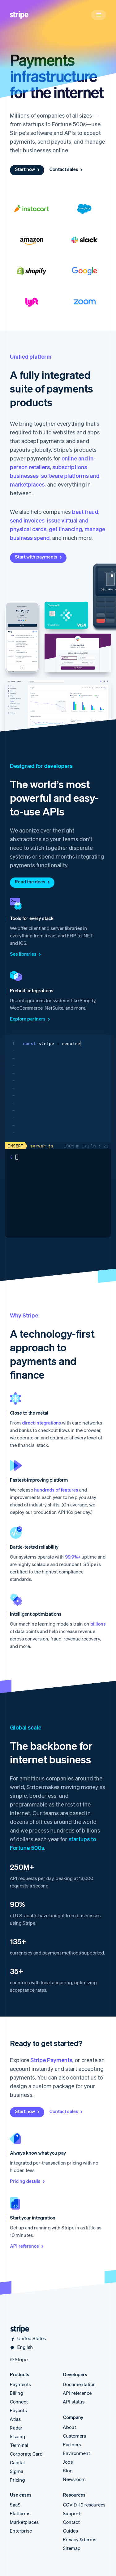 Example of Design for Business & Industrial, Business Services, E-Commerce Services, Mobile Landing Page by stripe.com-V2 | Mobile Landing Page Design